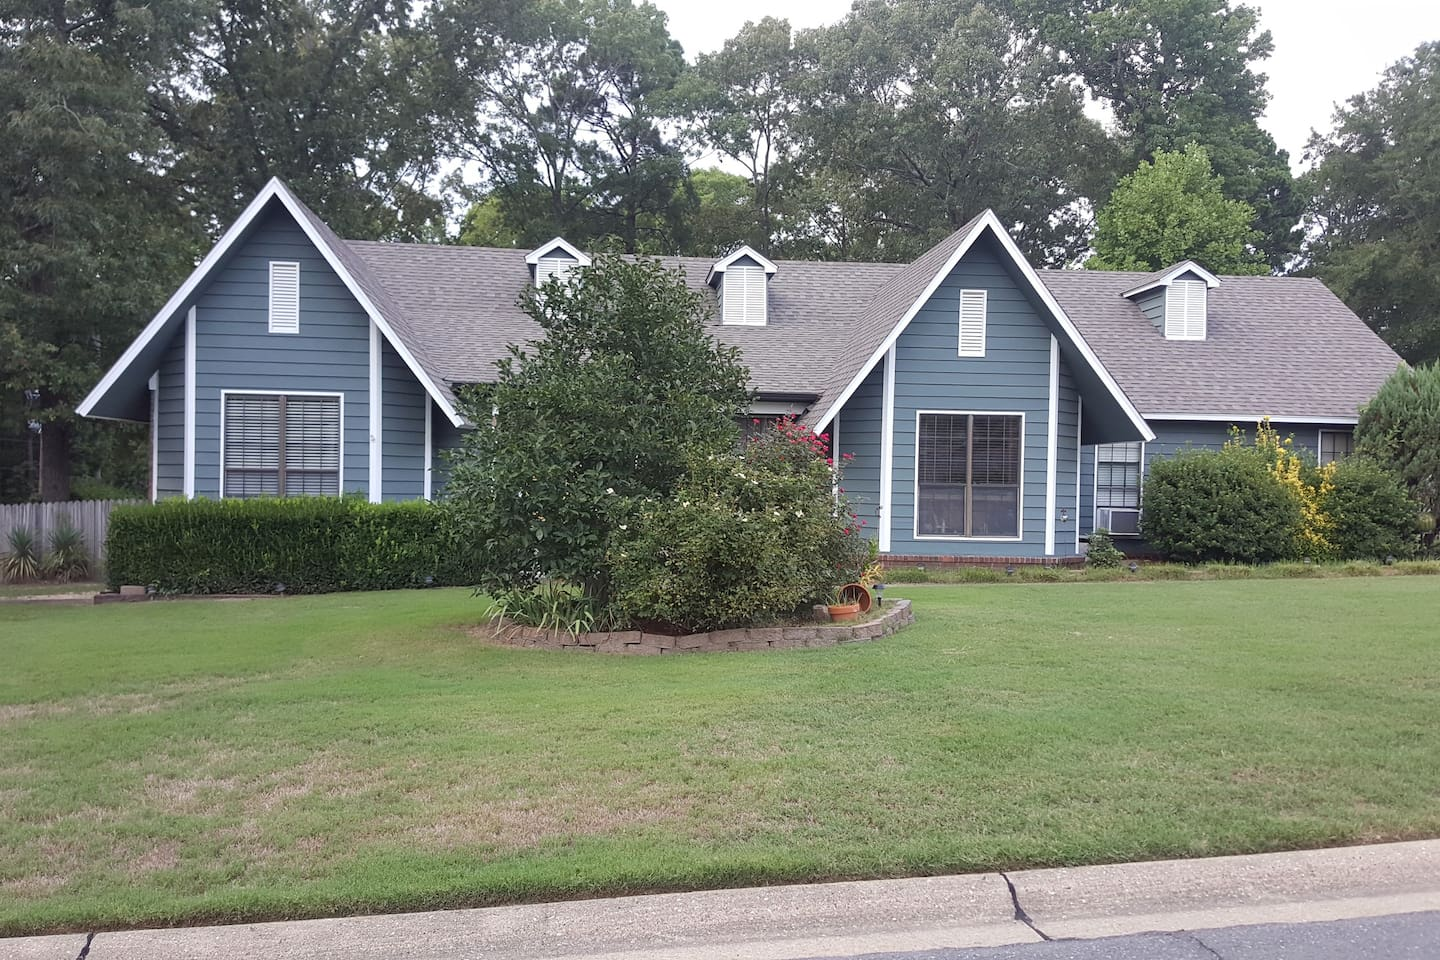 2200 square feet, walking distance to park with track and tennis courts.  20 minutes from Little Rock